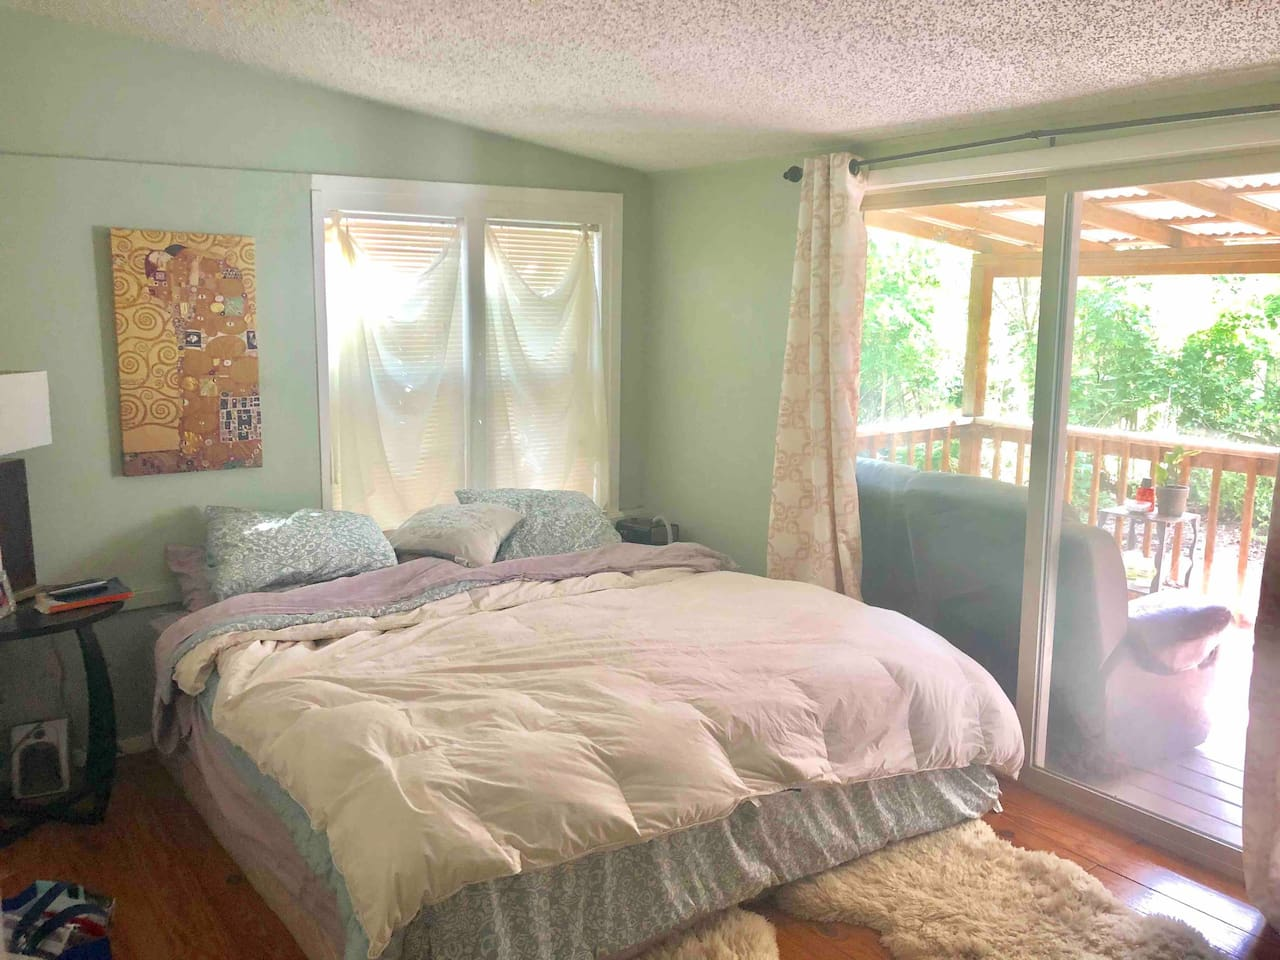 Master Bedroom with adjoining access to back porch and fire pit in backyard